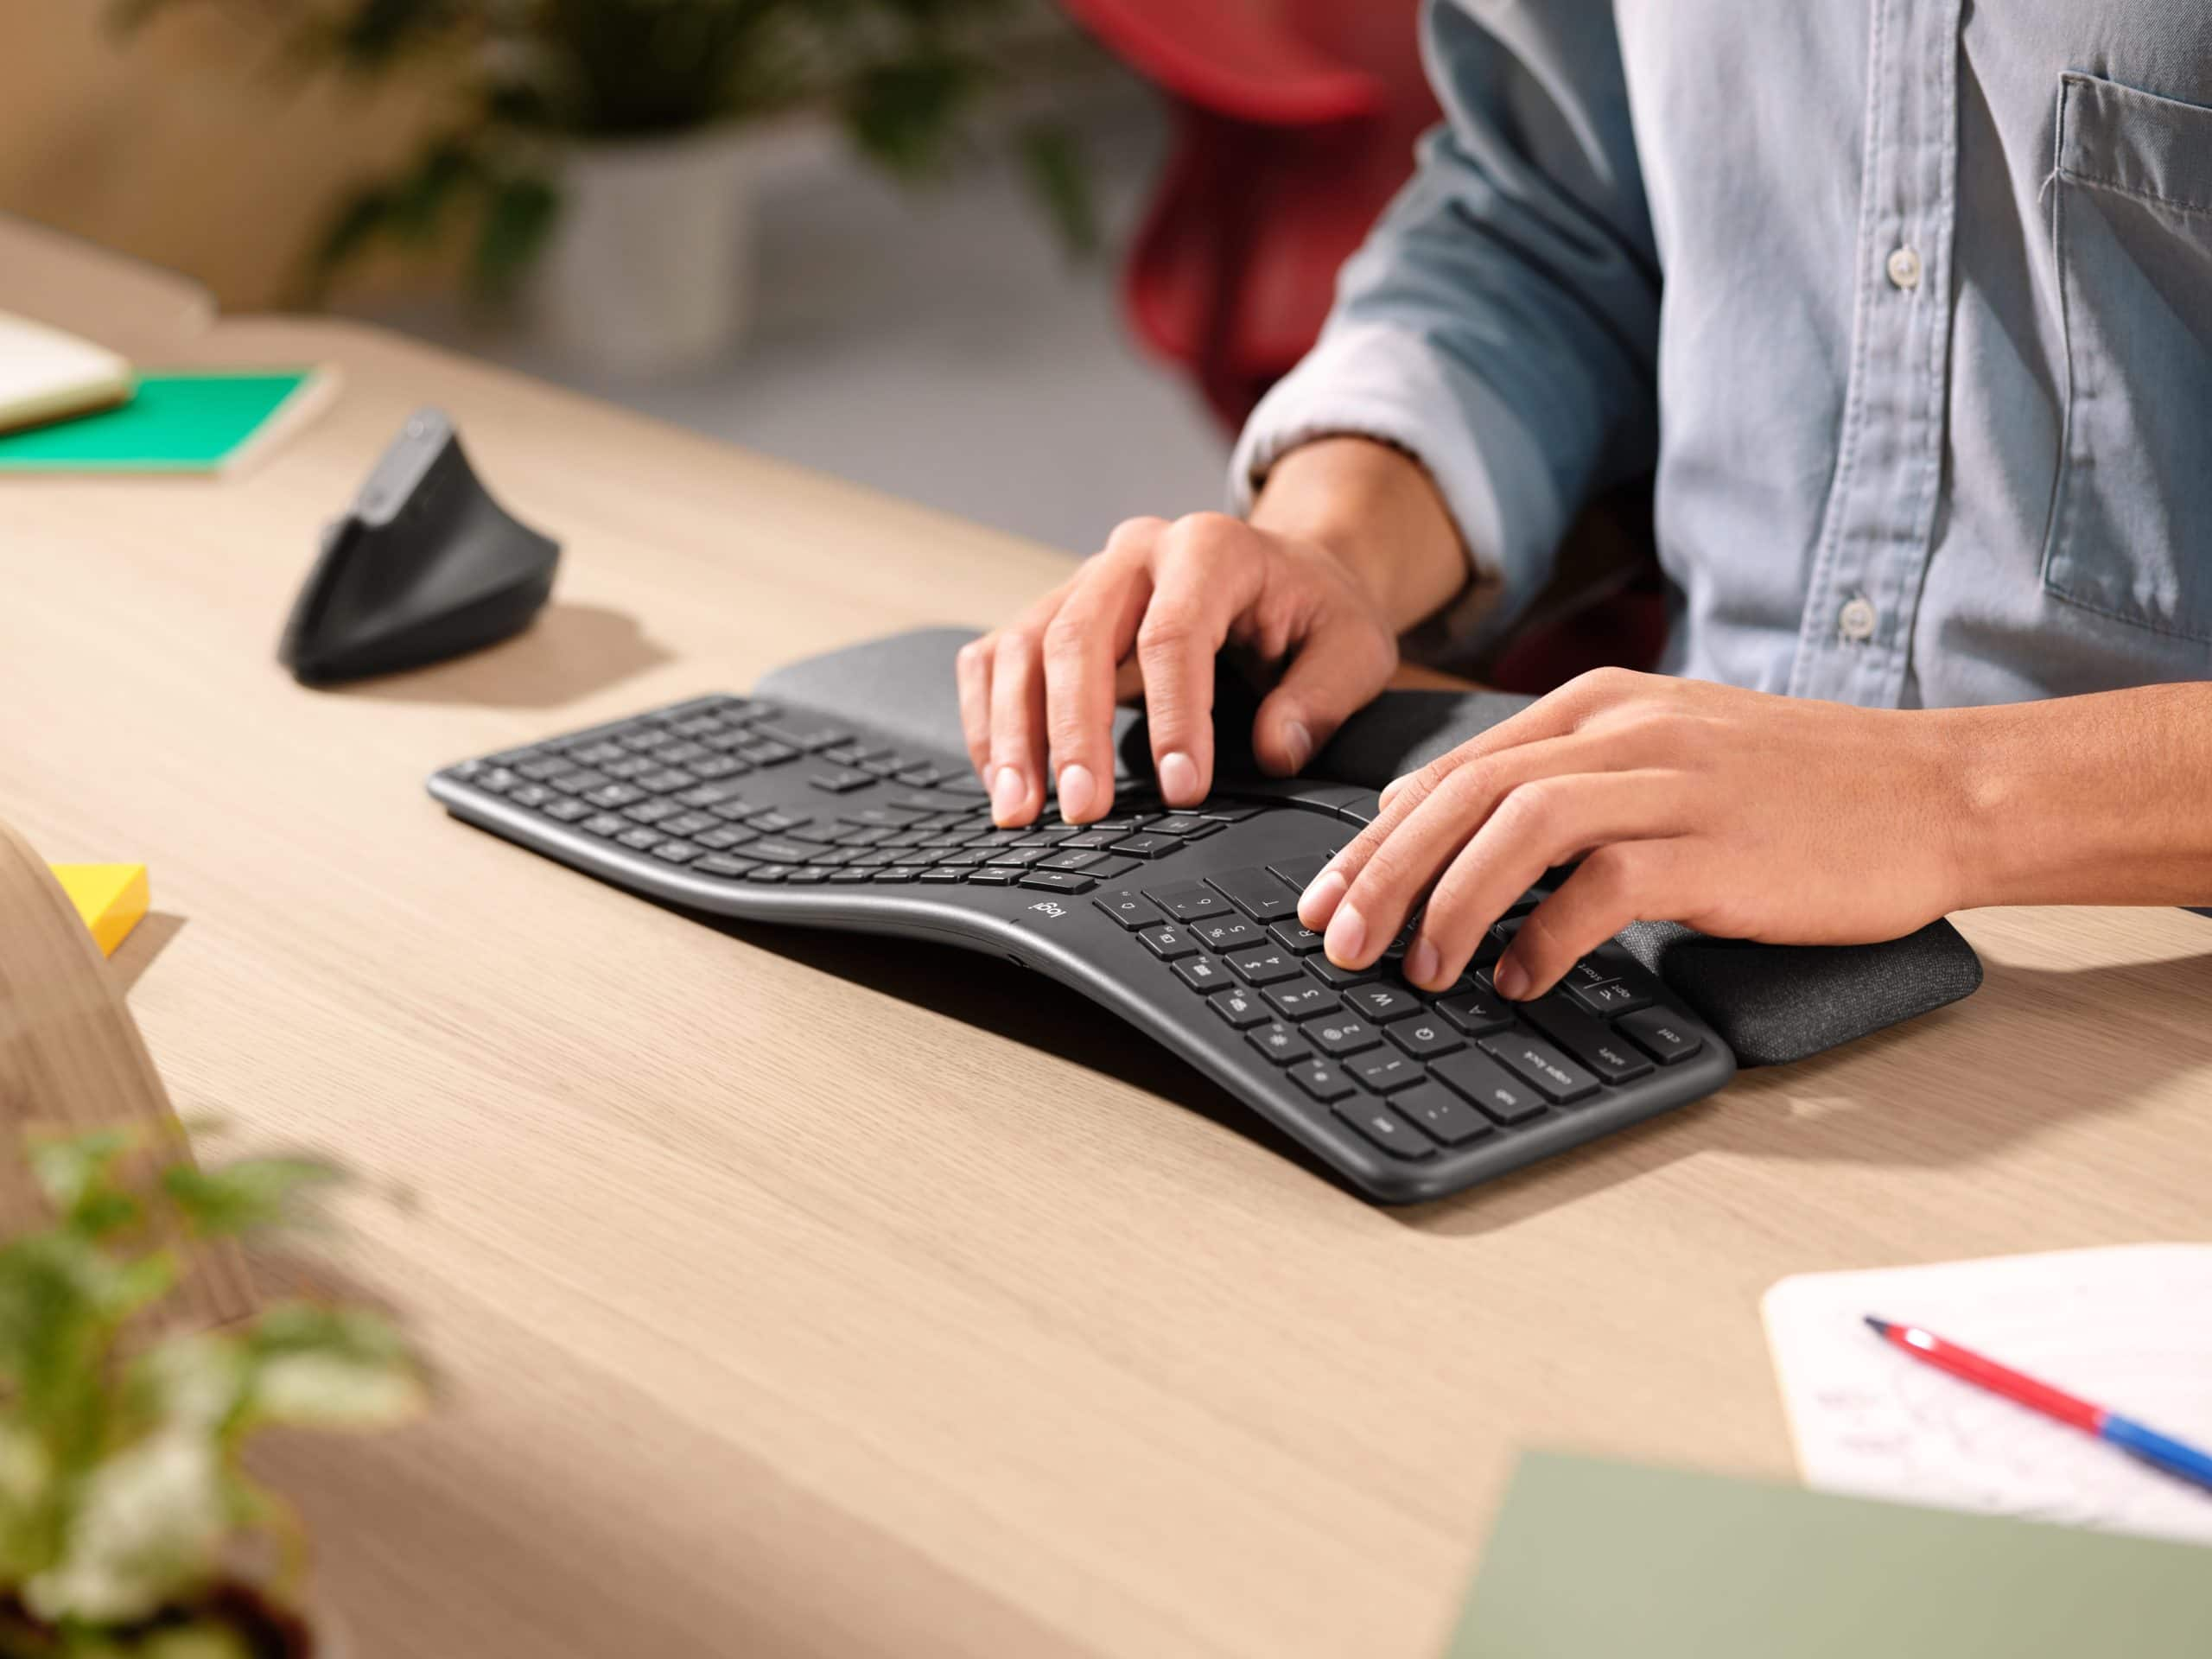 With an ergonomic split design and a fancy wrist rest, the Logitech Ergo K860 keyboard delivers comfortable typing.